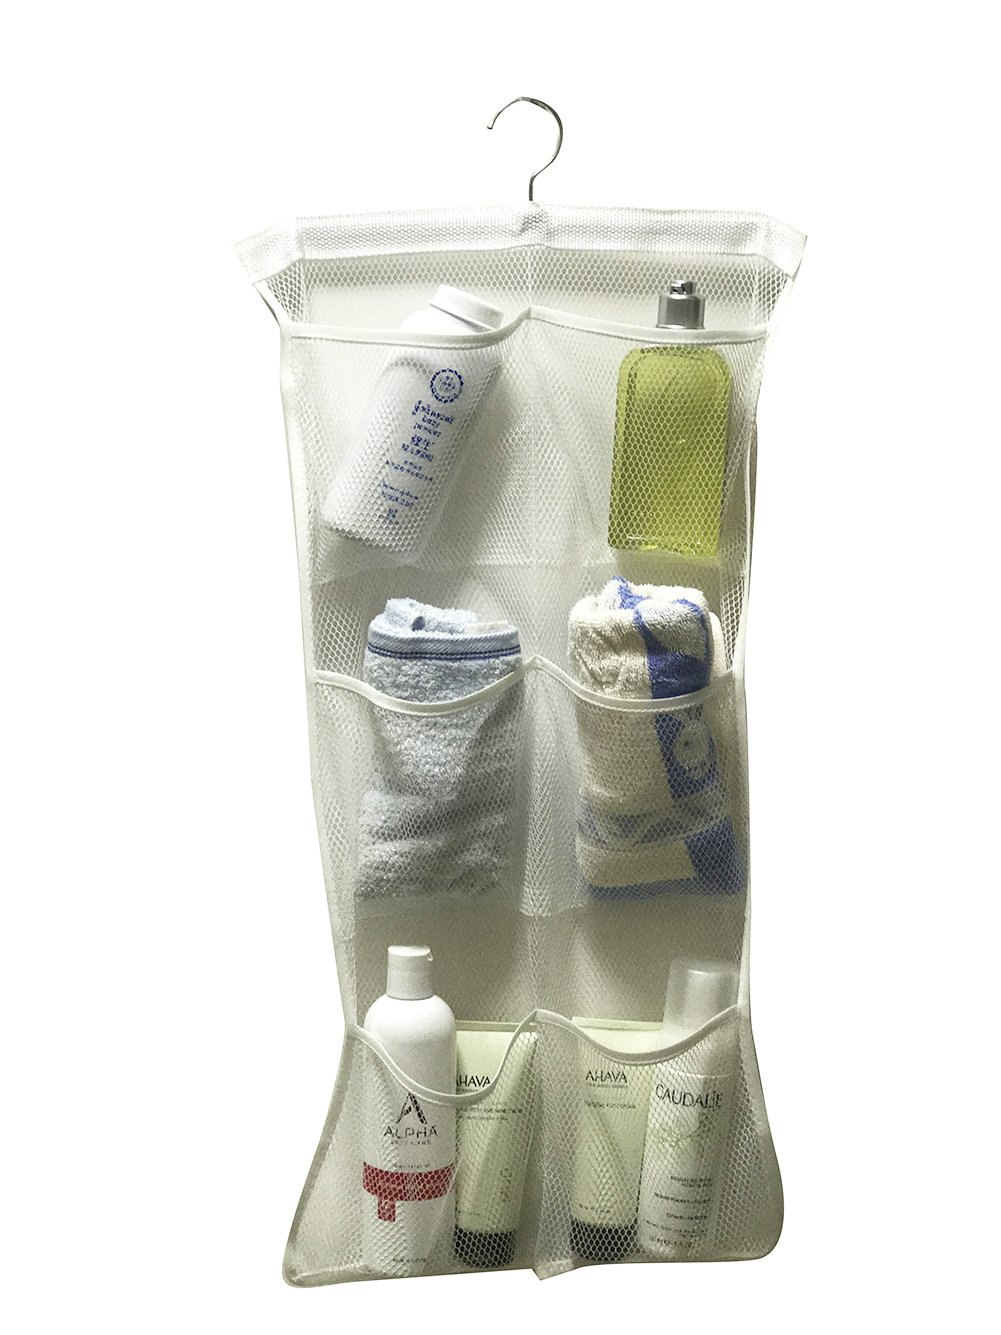 ACECLE Quick Dry Bath Shower Caddies Organizer 6 Pockets 1 Rotatable Hanger Hanging on Shower Curtain Rod Hooks Arm Support Doorknob Bathroom Wardrobe Gym Camping Save Space (3 Colors Available)